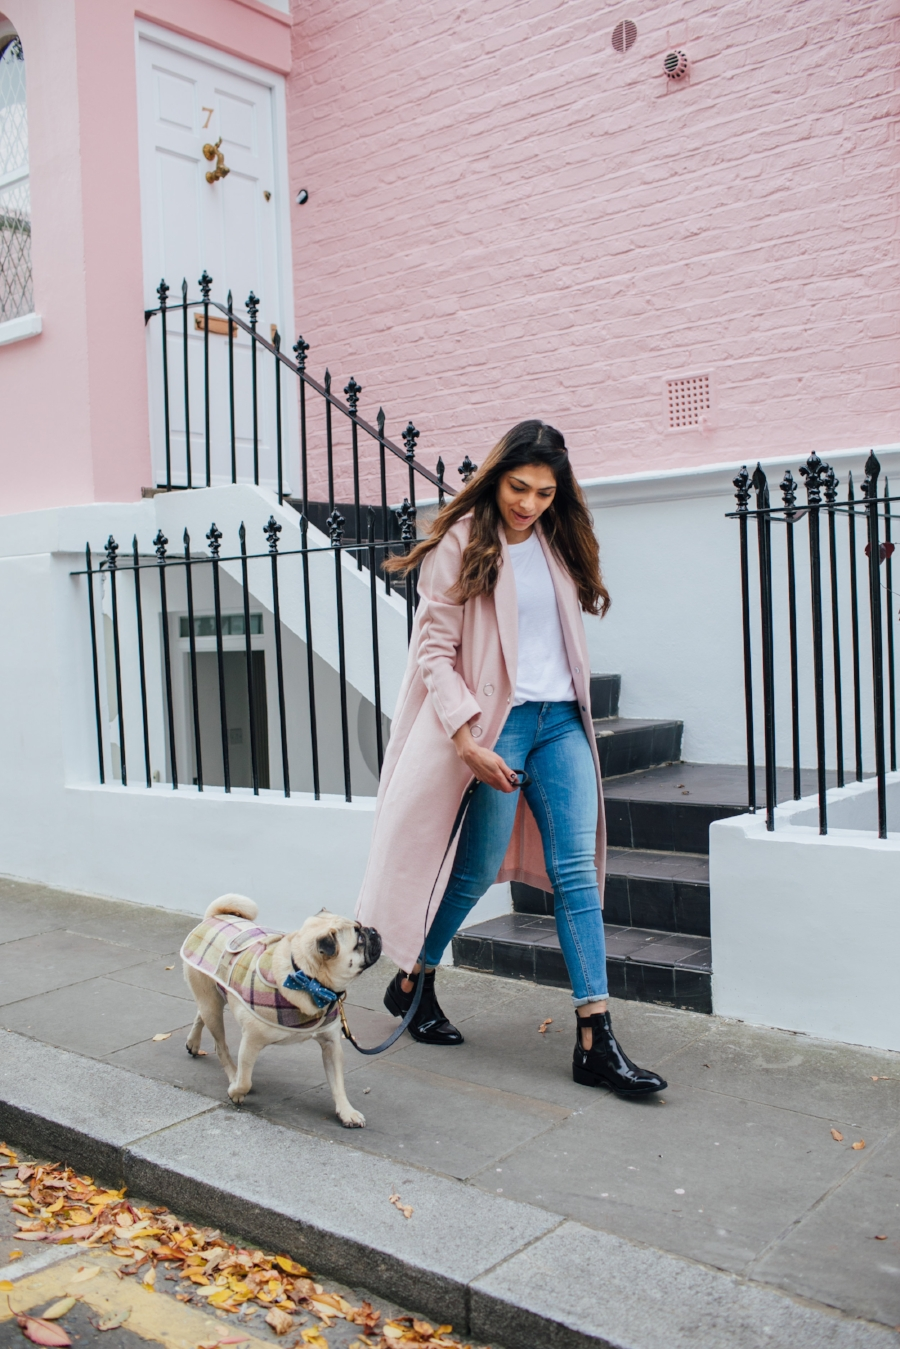 dogblog-london-bestdogbloginlondon-dogfashion-dogfashionblog-fashionandlifestyle-streetstyle-pugswag-humanandhound-pink-fallfashion-falltrends-dogsinclothes-dapperdogs-pug-puglife-bestdressedpug-fashionblogger-newyork-uk-pinkwintercoat-puglife-twinning-bestdressedpug-awesome-best-bestdogbloglondon-dogfashionlondon-coolestdogblog-cooldogs -topdogbloglondon-bestdogblog